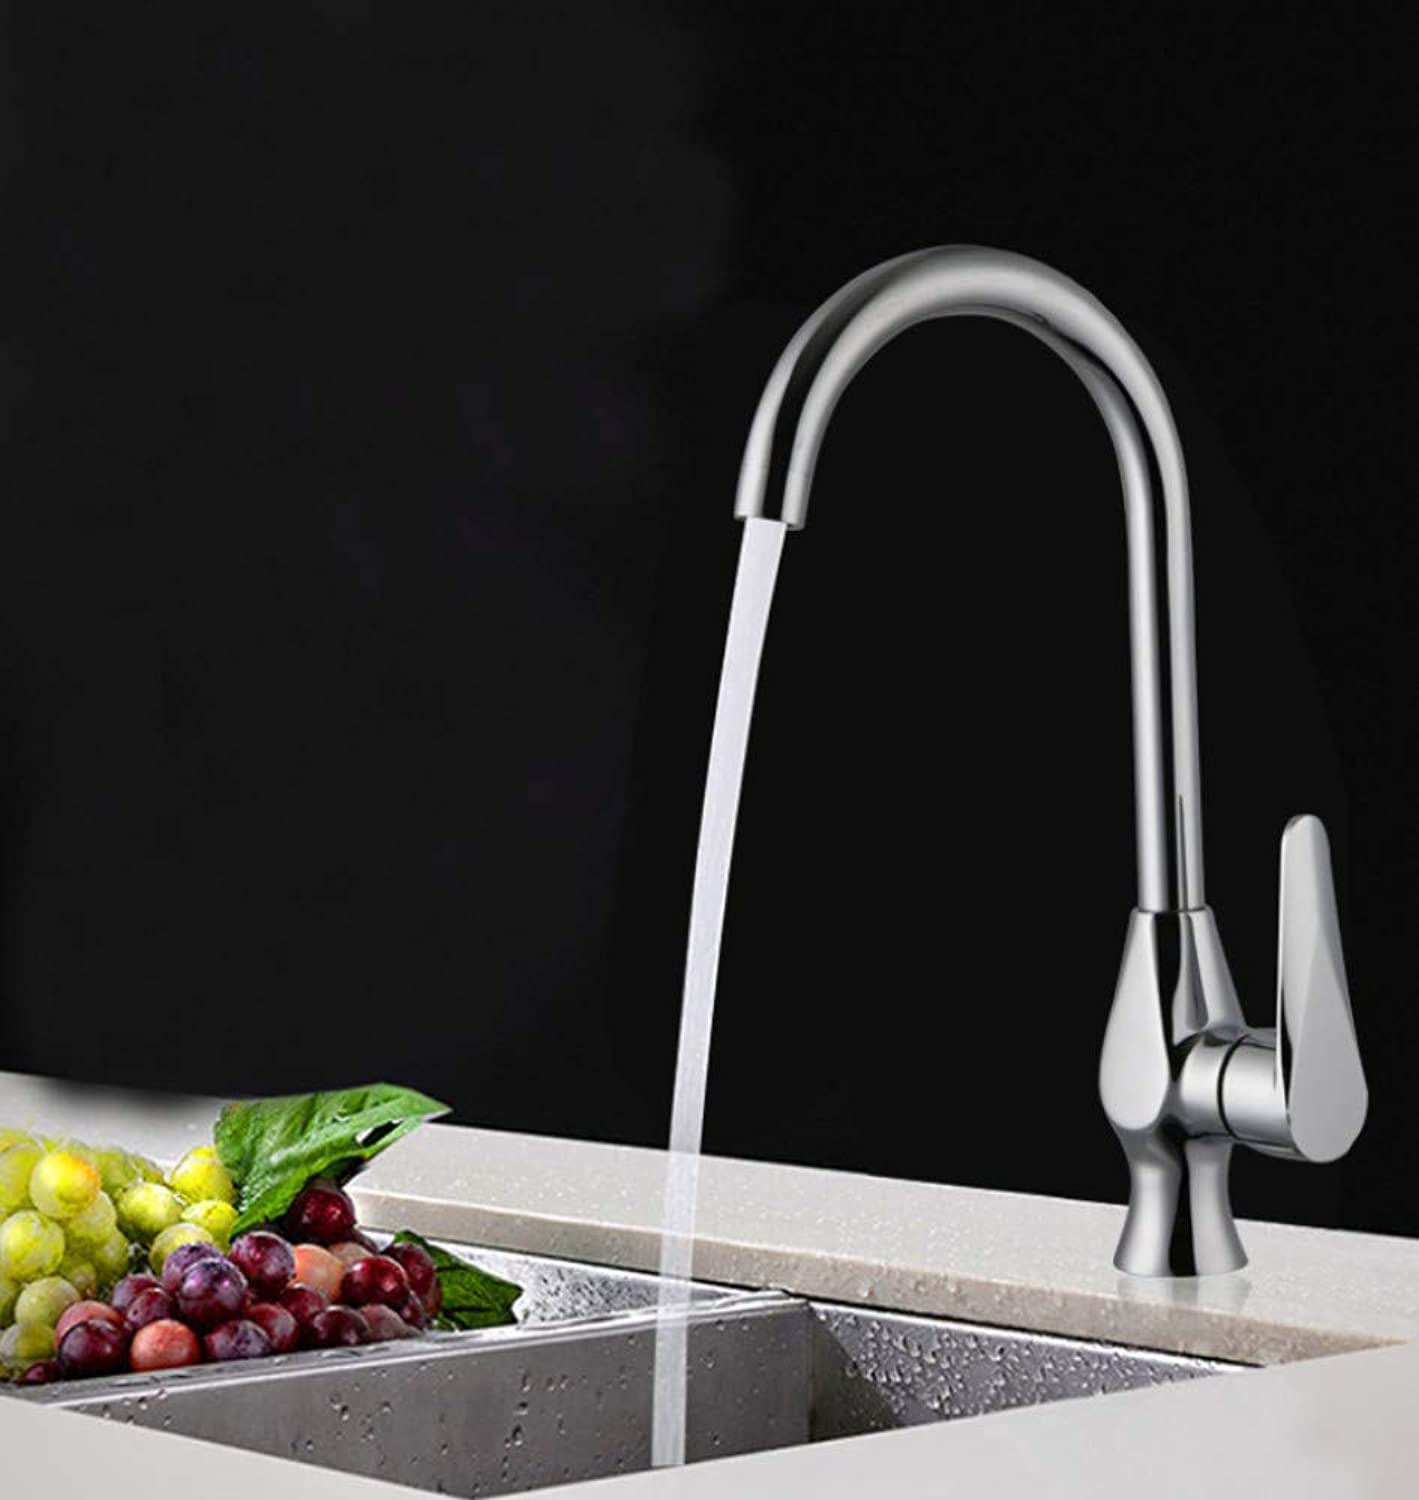 redOOY Copper faucet 360 degree redating kitchen sink hot and cold water faucet hot and cold water faucet